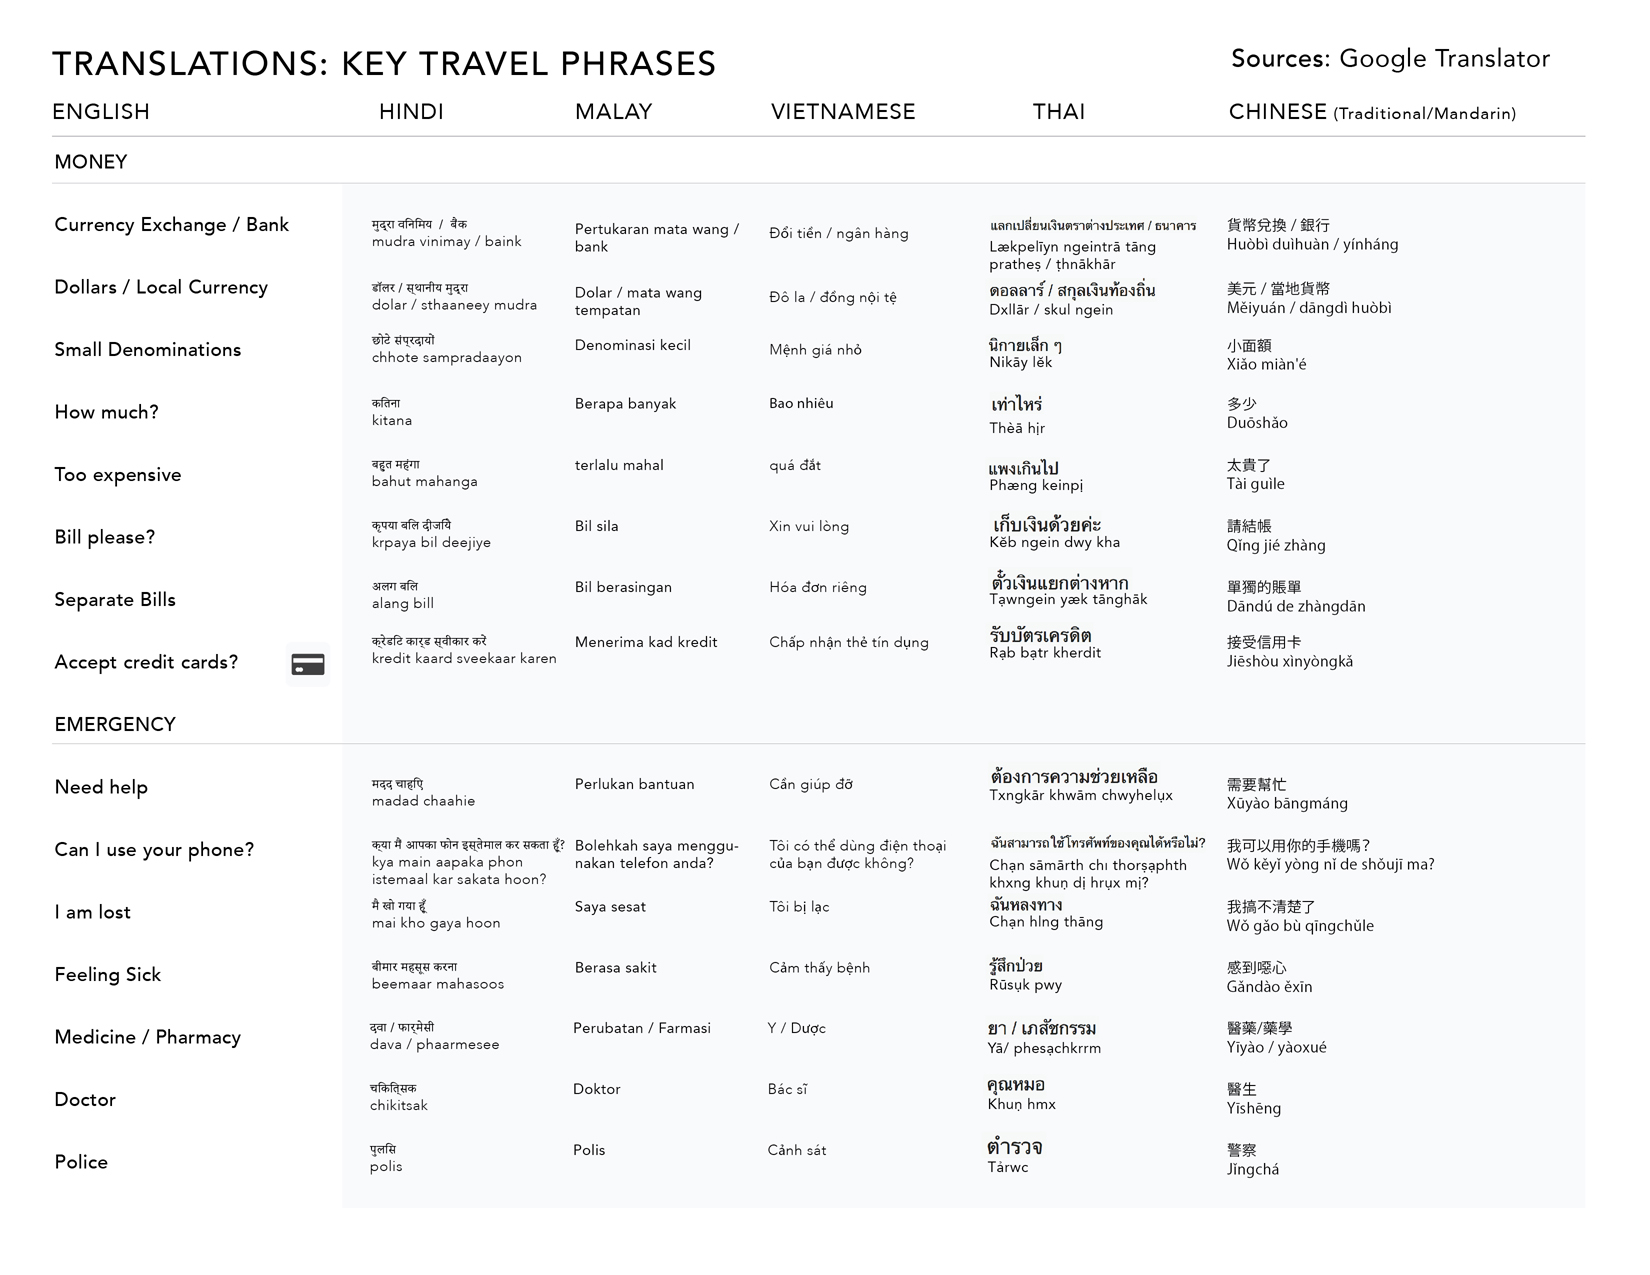 Travel translations, key phrases for Asia, page 4